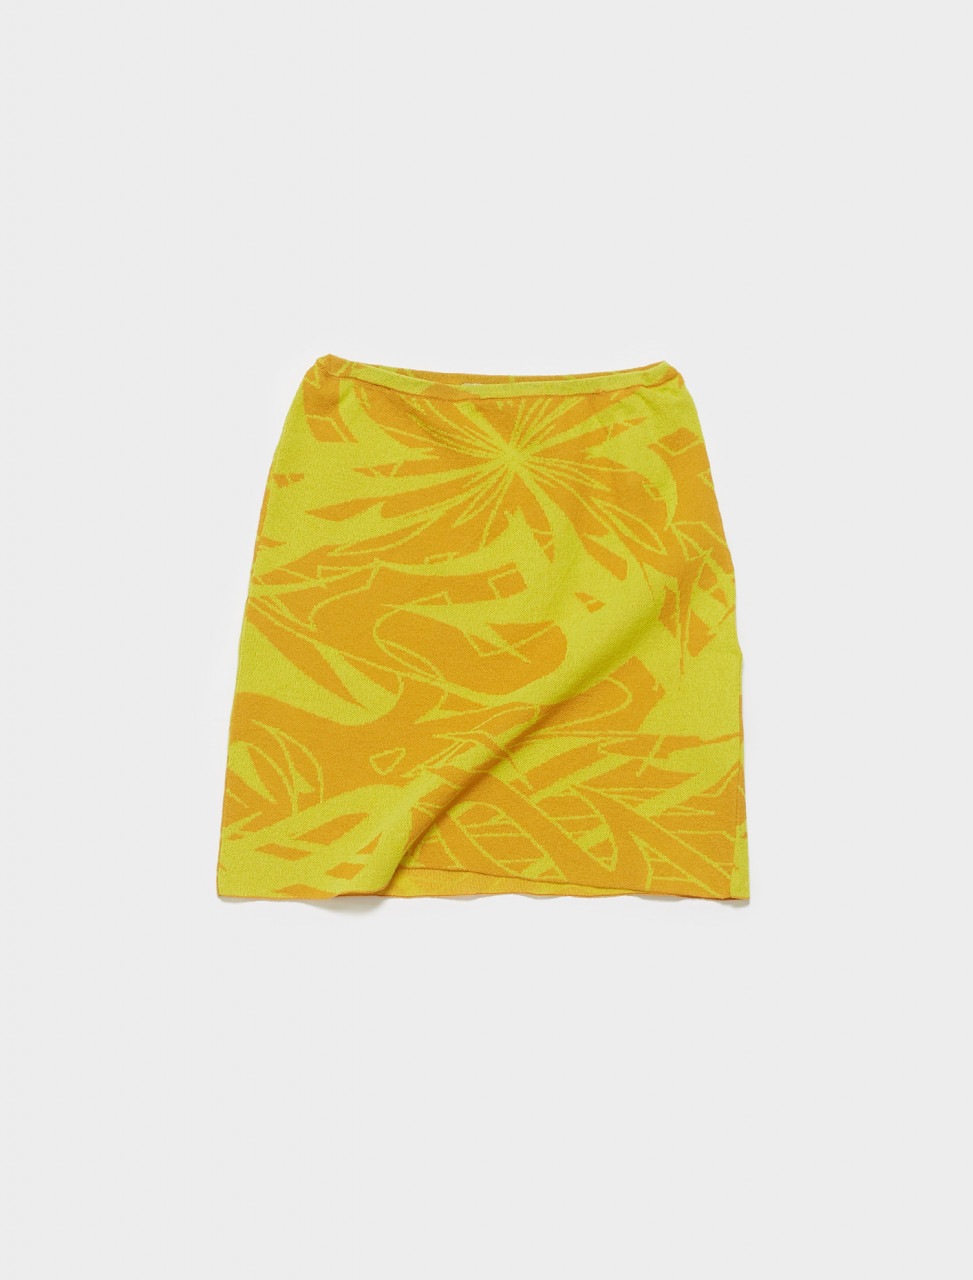 PKM004-109 PALOMA WOOL AERI KNITTED MINI SKIRT IN DARK YELLOW